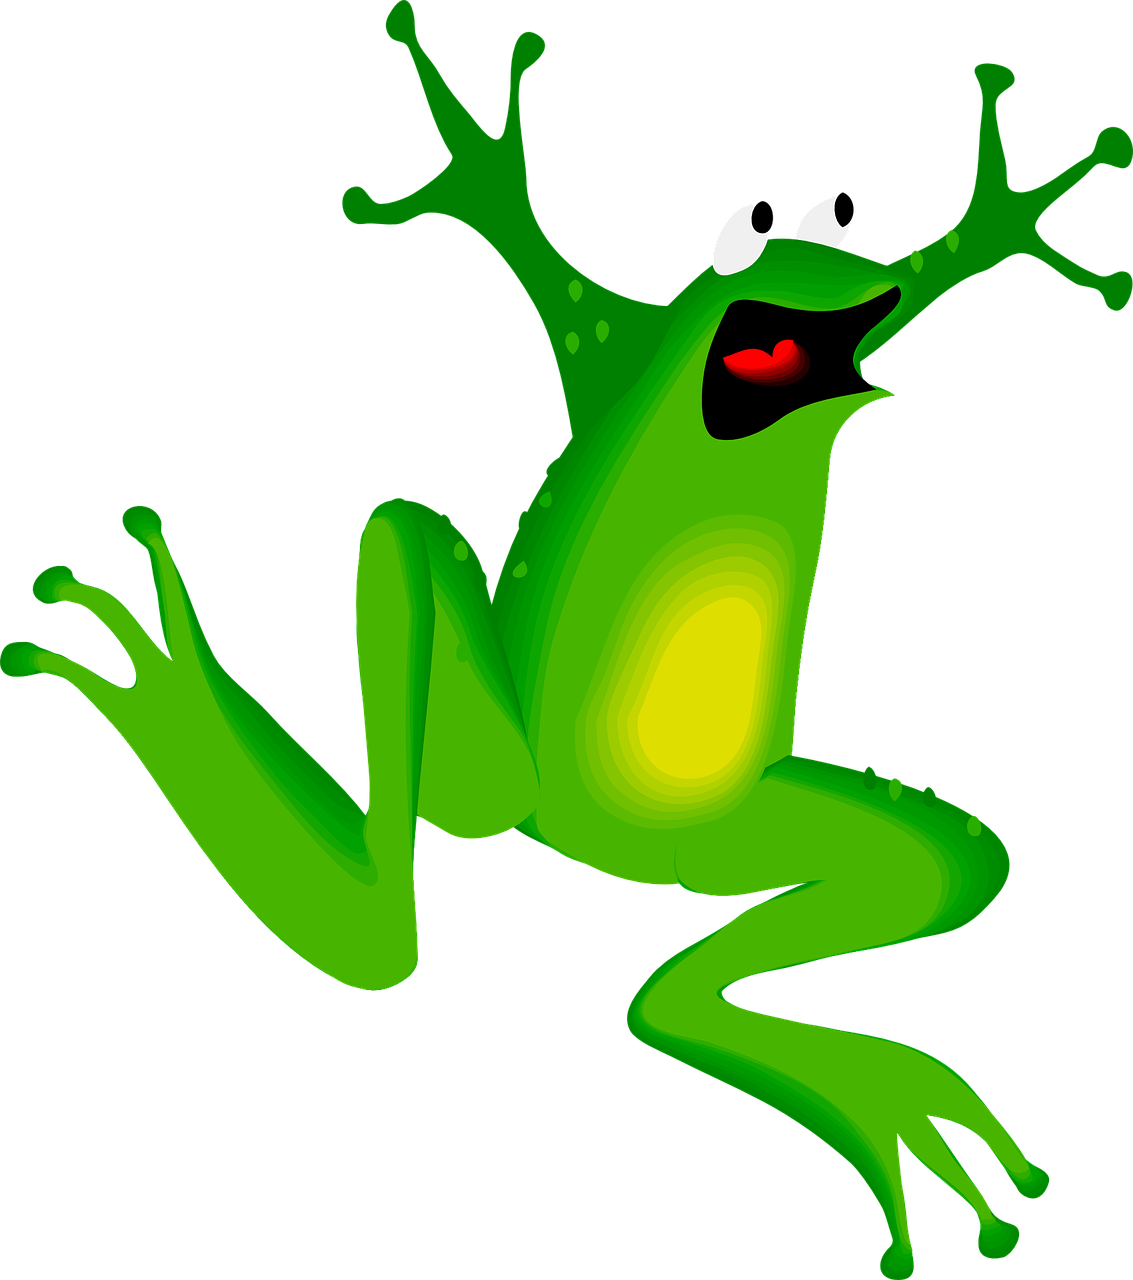 frog-308847_1280.png